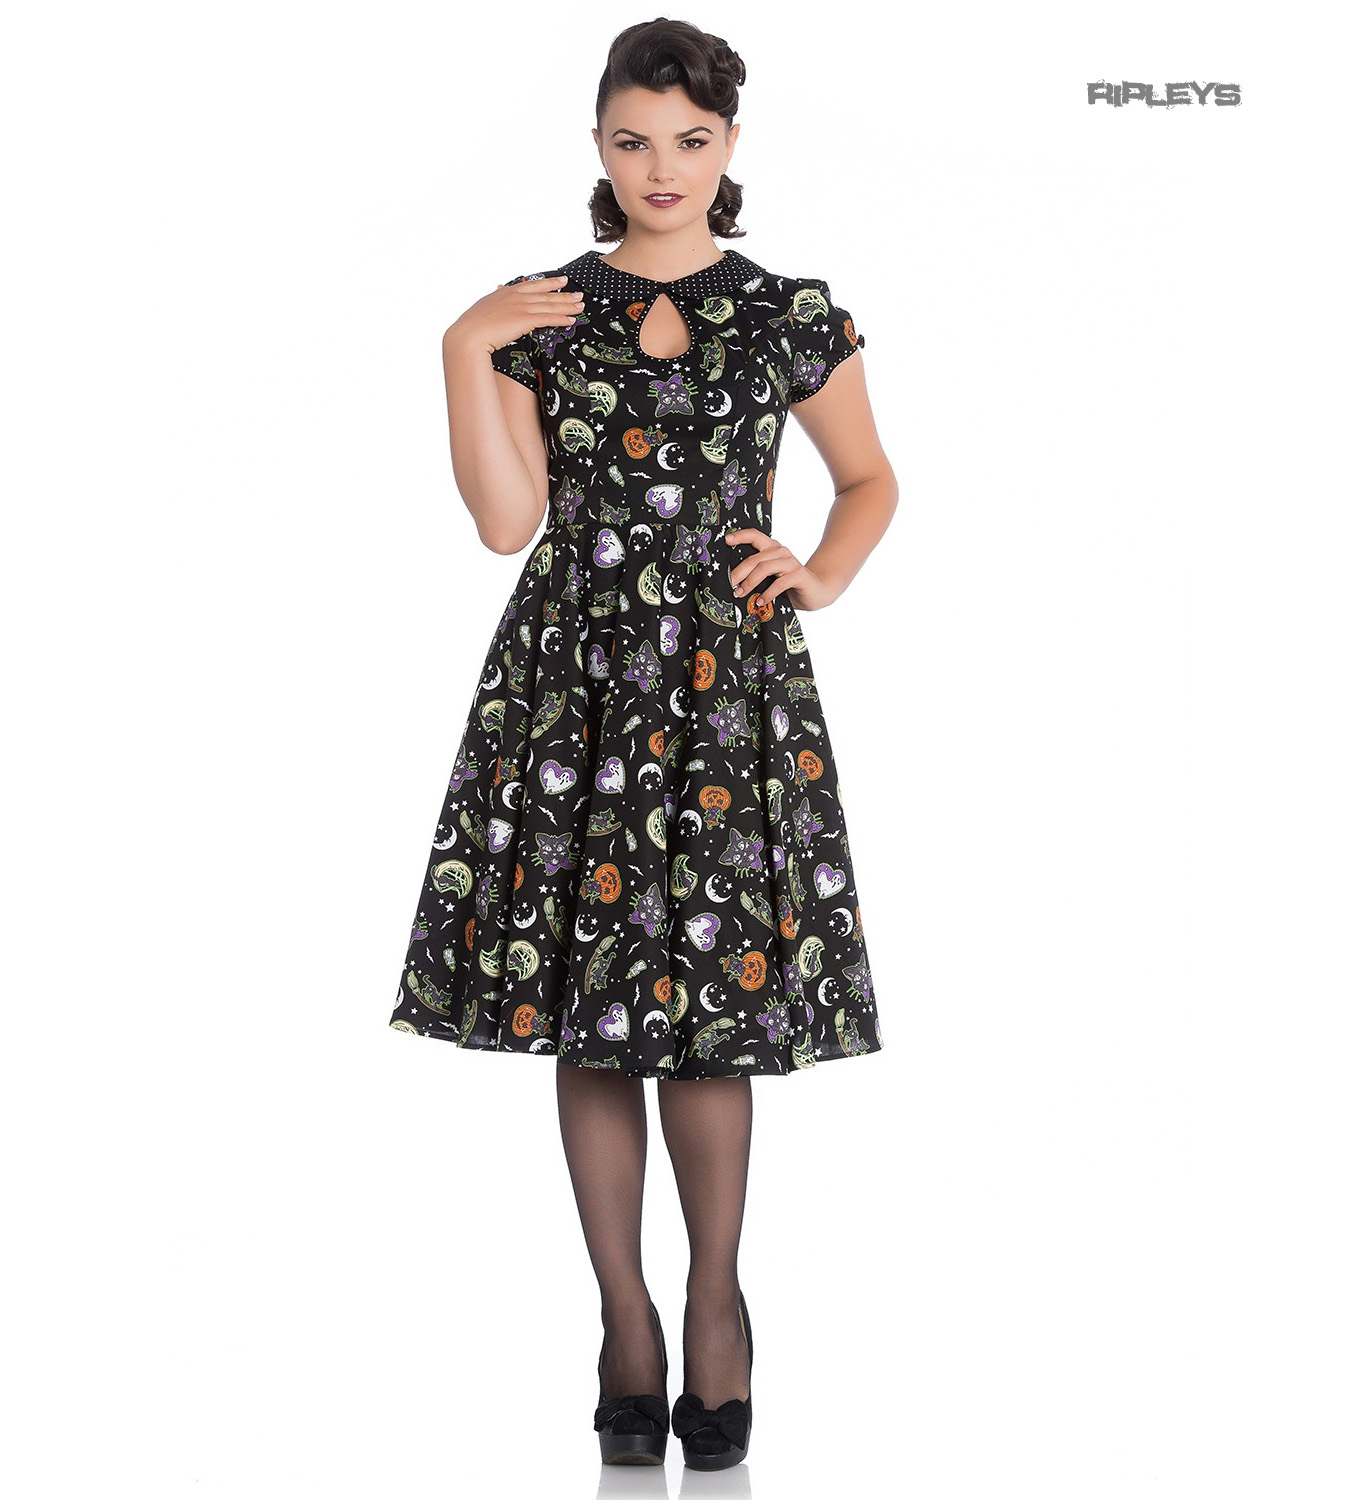 Hell-Bunny-50s-Black-Pin-Up-Dress-Horror-Witchy-SALEM-Halloween-All-Sizes thumbnail 8